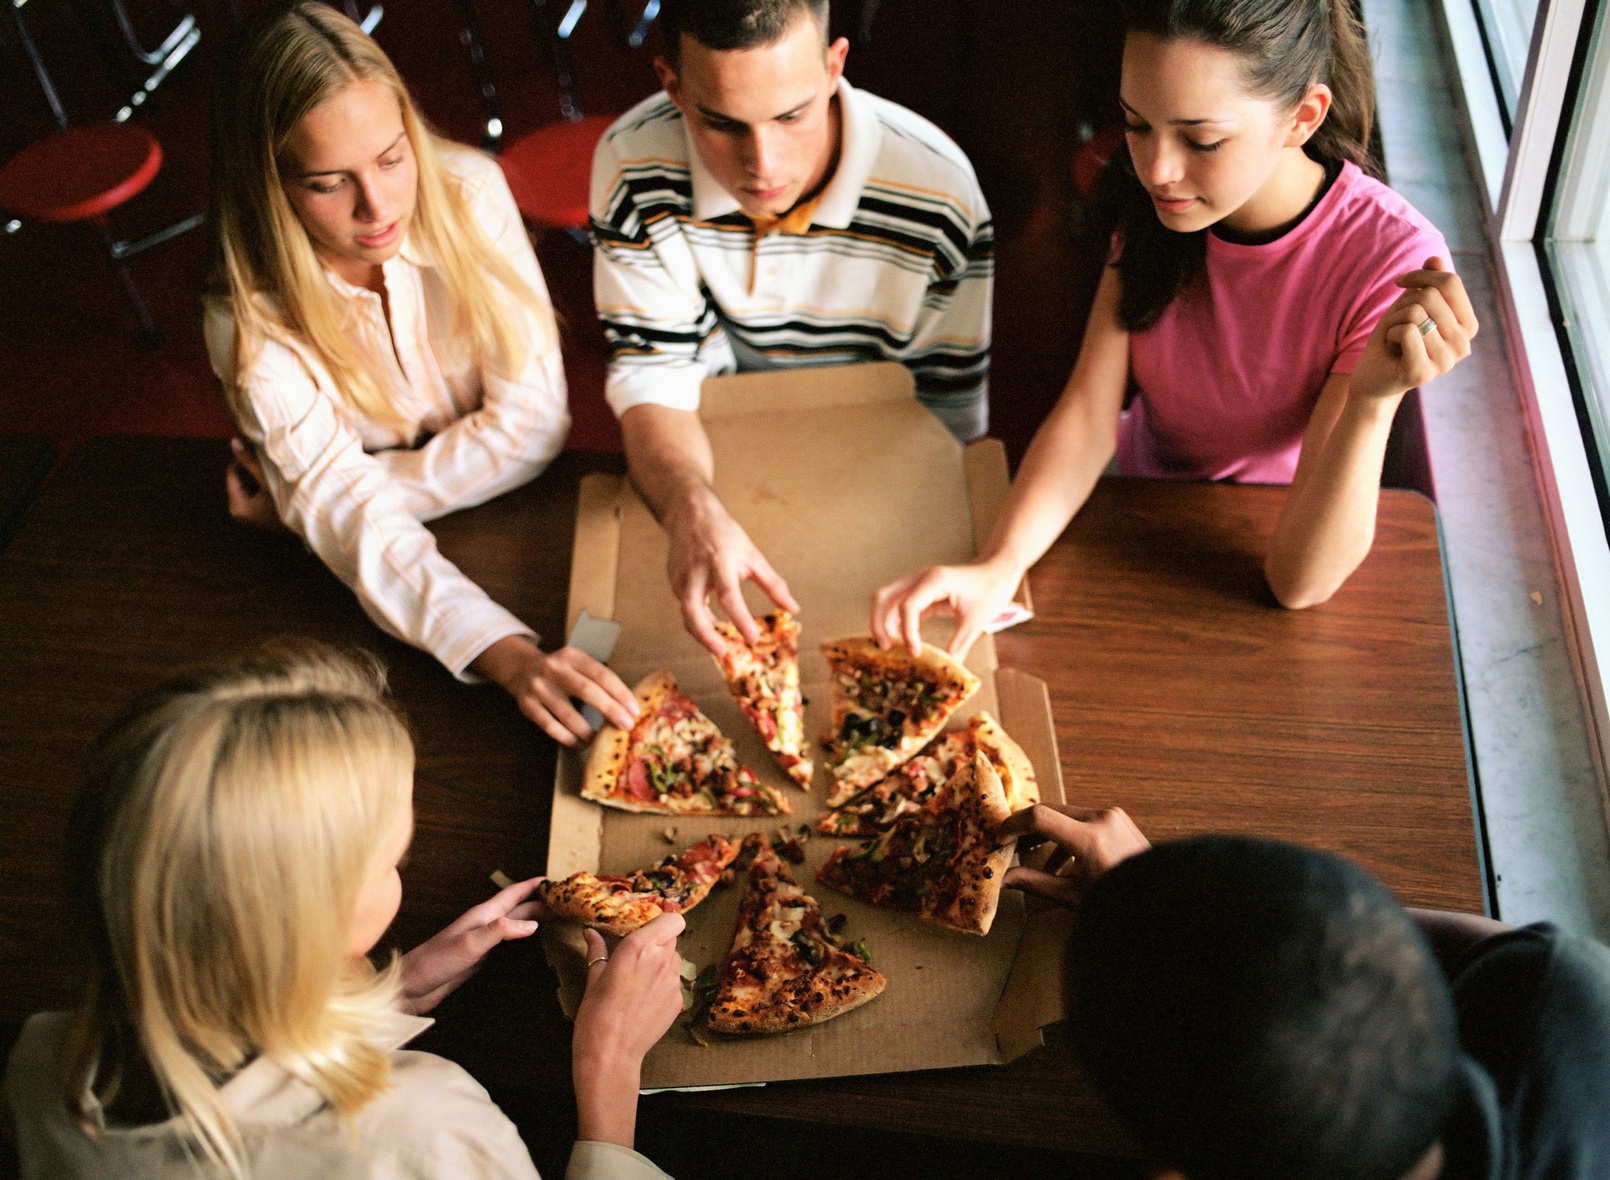 College students eating pizza